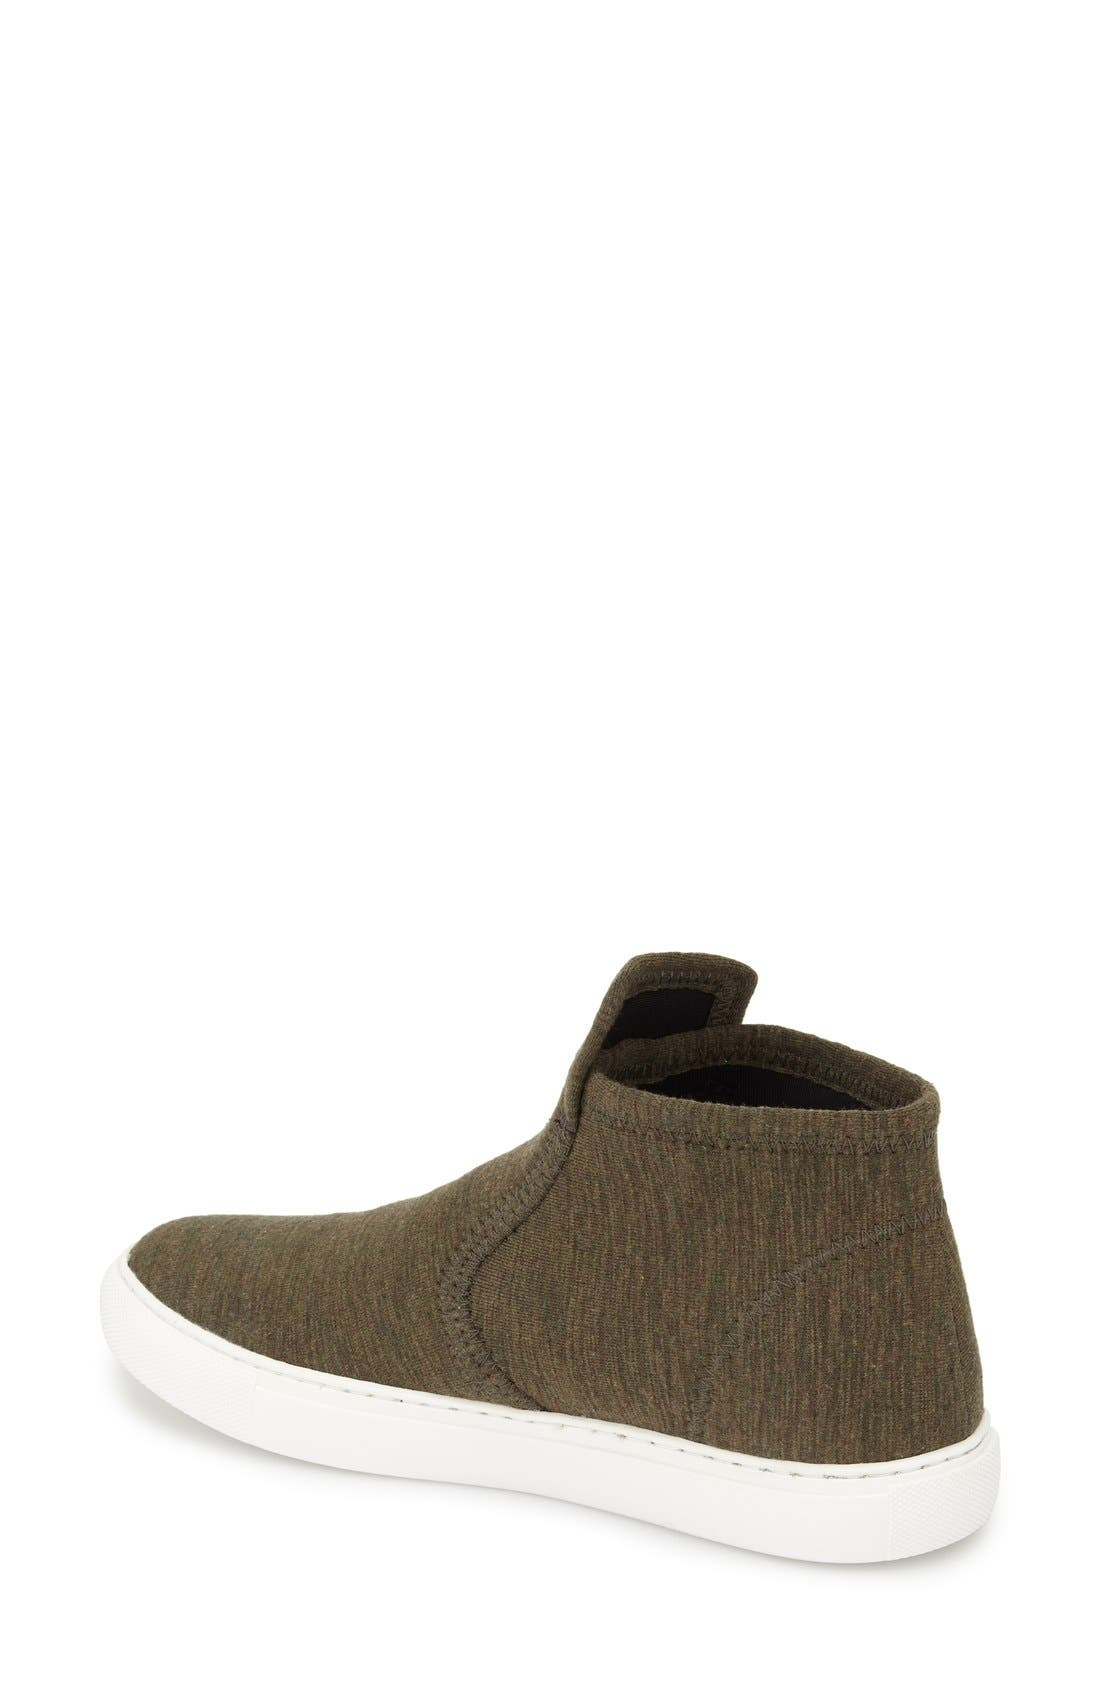 Alternate Image 2  - Reaction Kenneth Cole 'Kam-Ping' High Top Sneaker (Women)